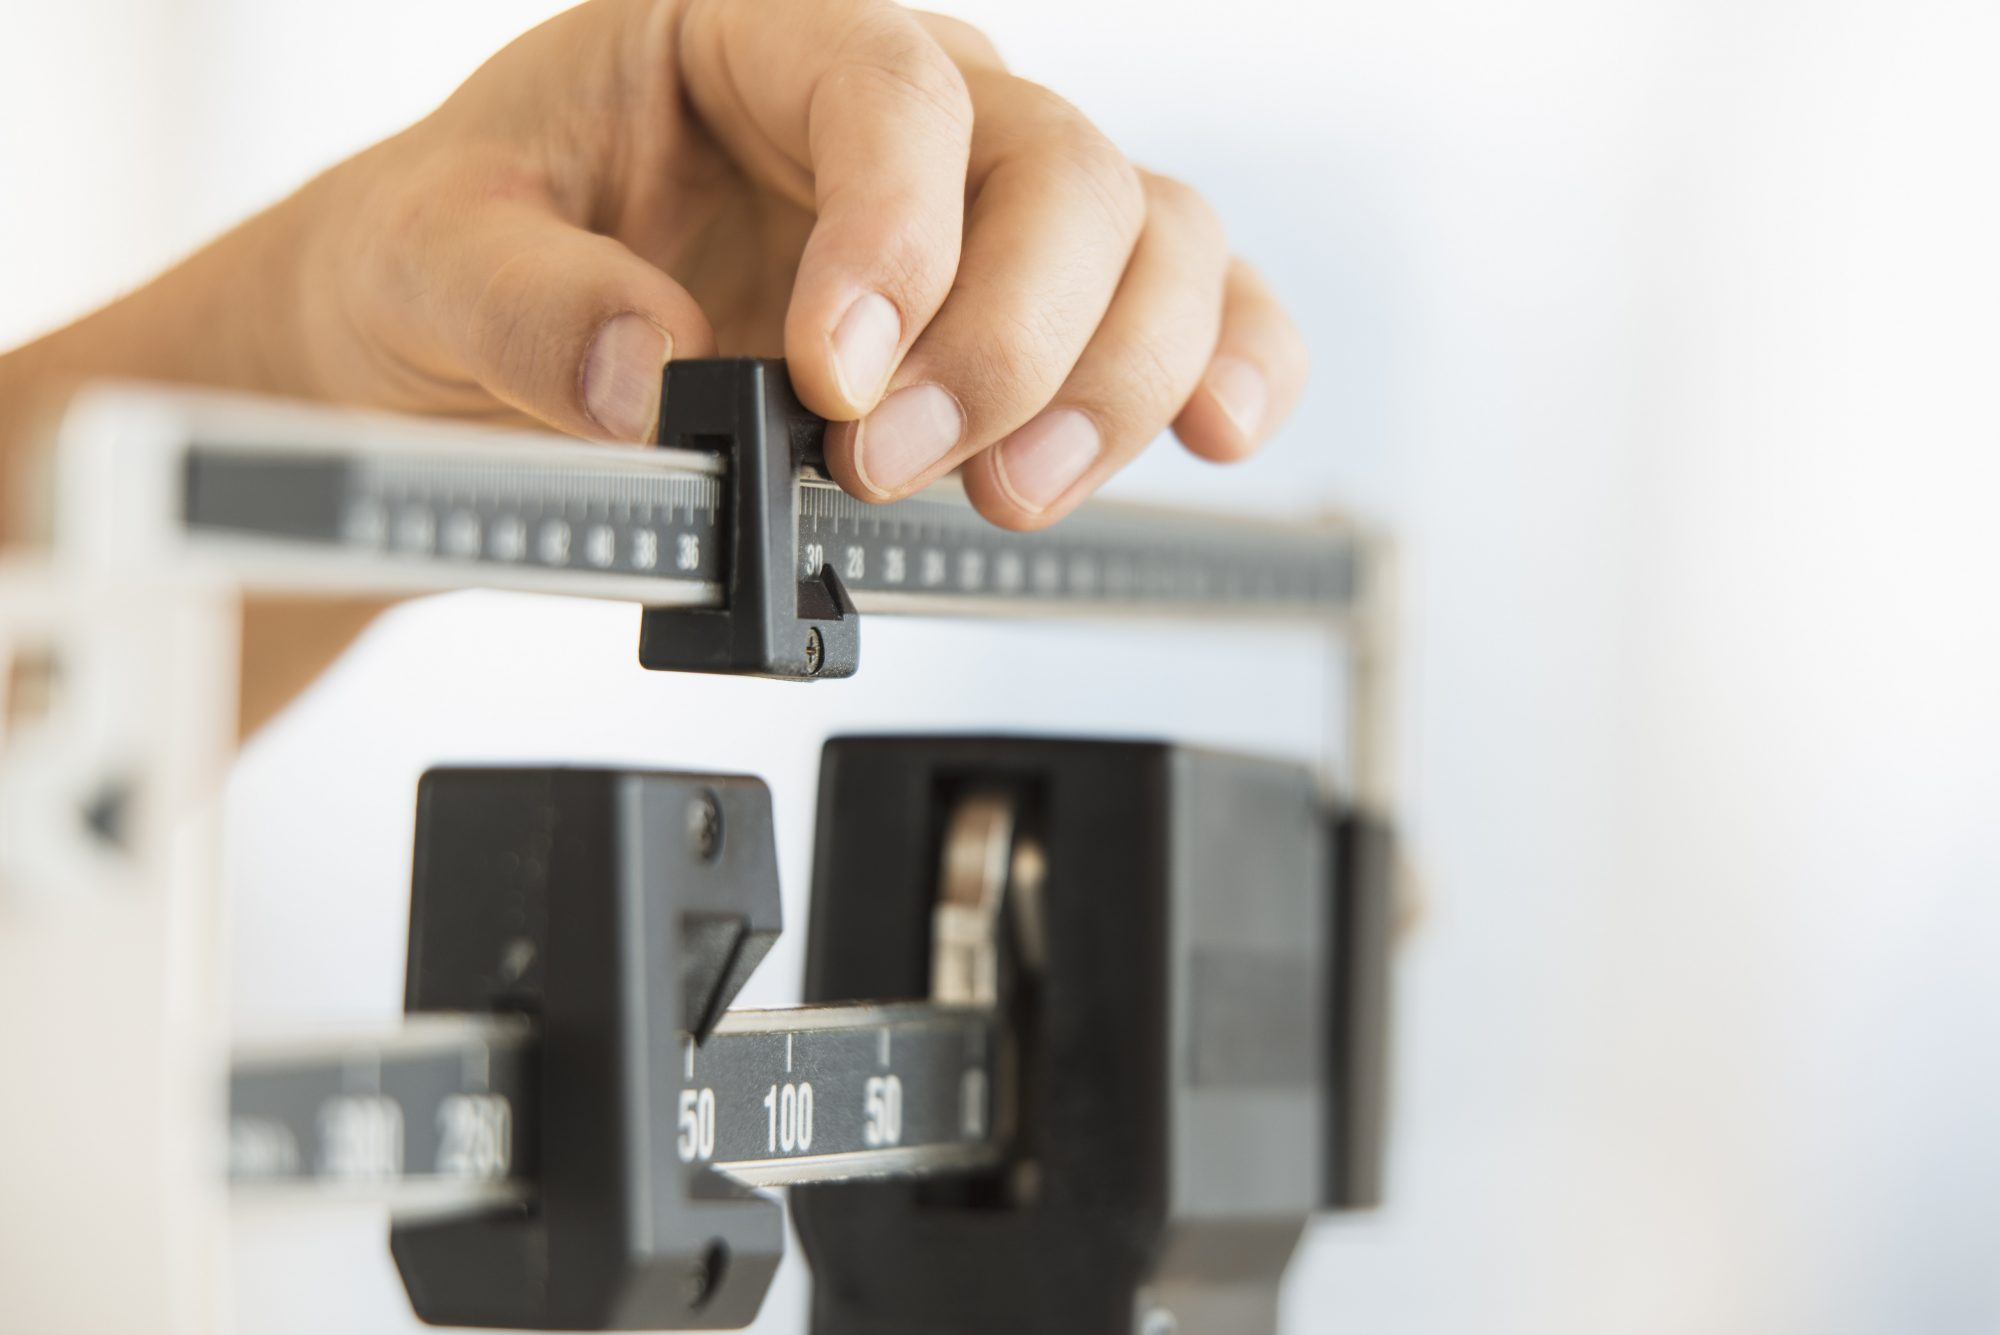 5 Myths and Facts About Holiday Weight Gain